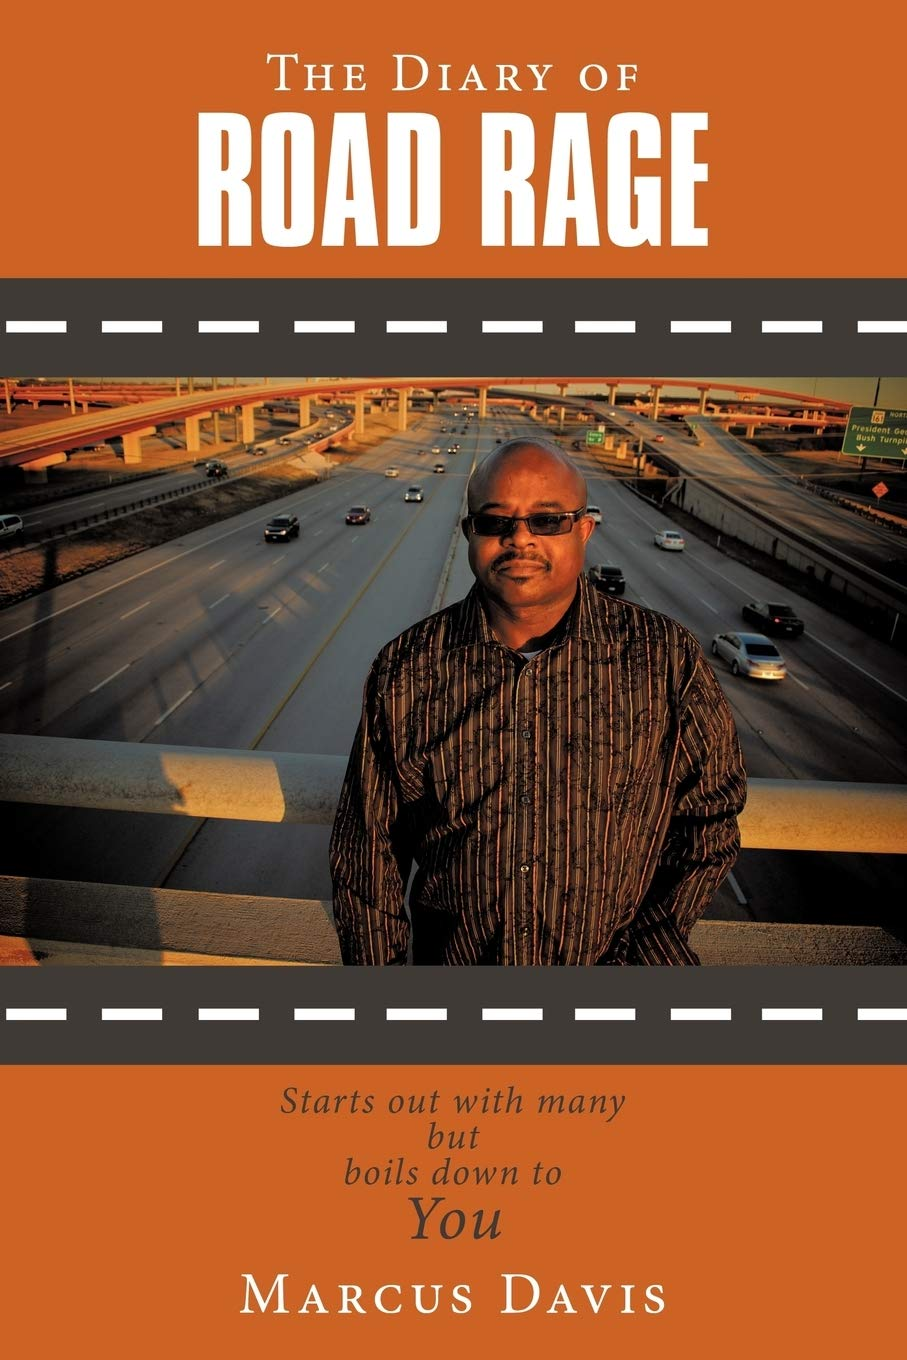 The Diary Of Road Rage Starts Out With Many But Boils Down To You By Marcus Davis